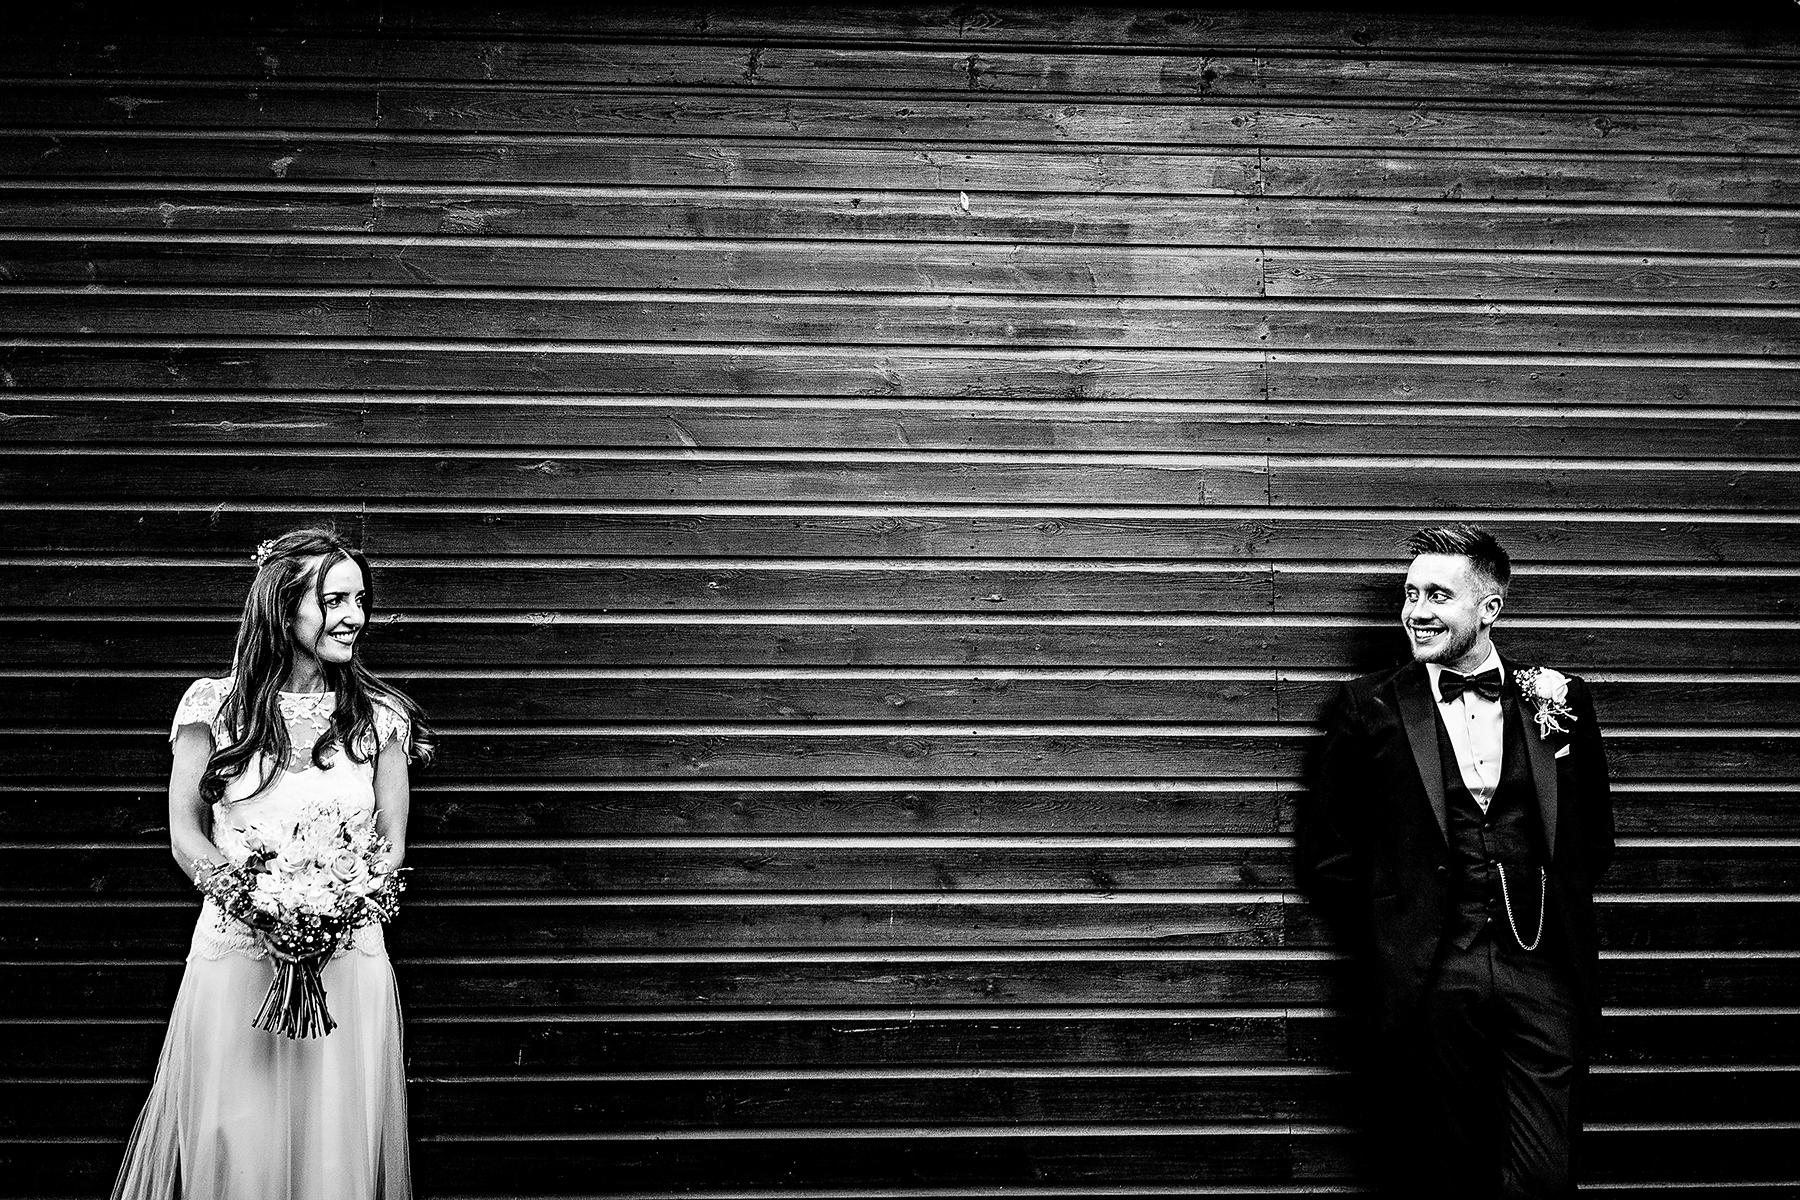 bride and groom wedding photography at Colshaw Hall